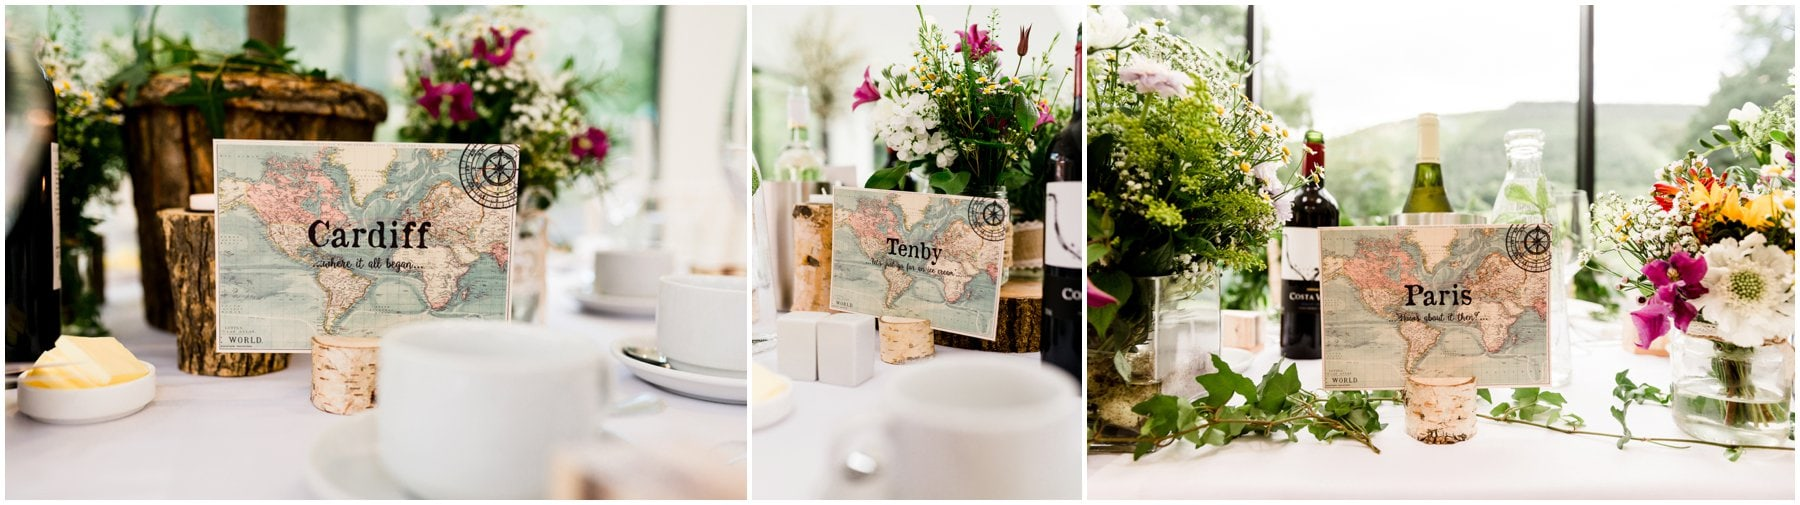 Ffion and Hefin's beautiful, elegant summer wedding at Ten Dwr Hall in Llangollen, Wales with wild flowers and sage colours by West Midlands and Wales Wedding photographer Lisa Carpenter Photography, specialising in cool, contemporary wedding photos. Details and table decoration.